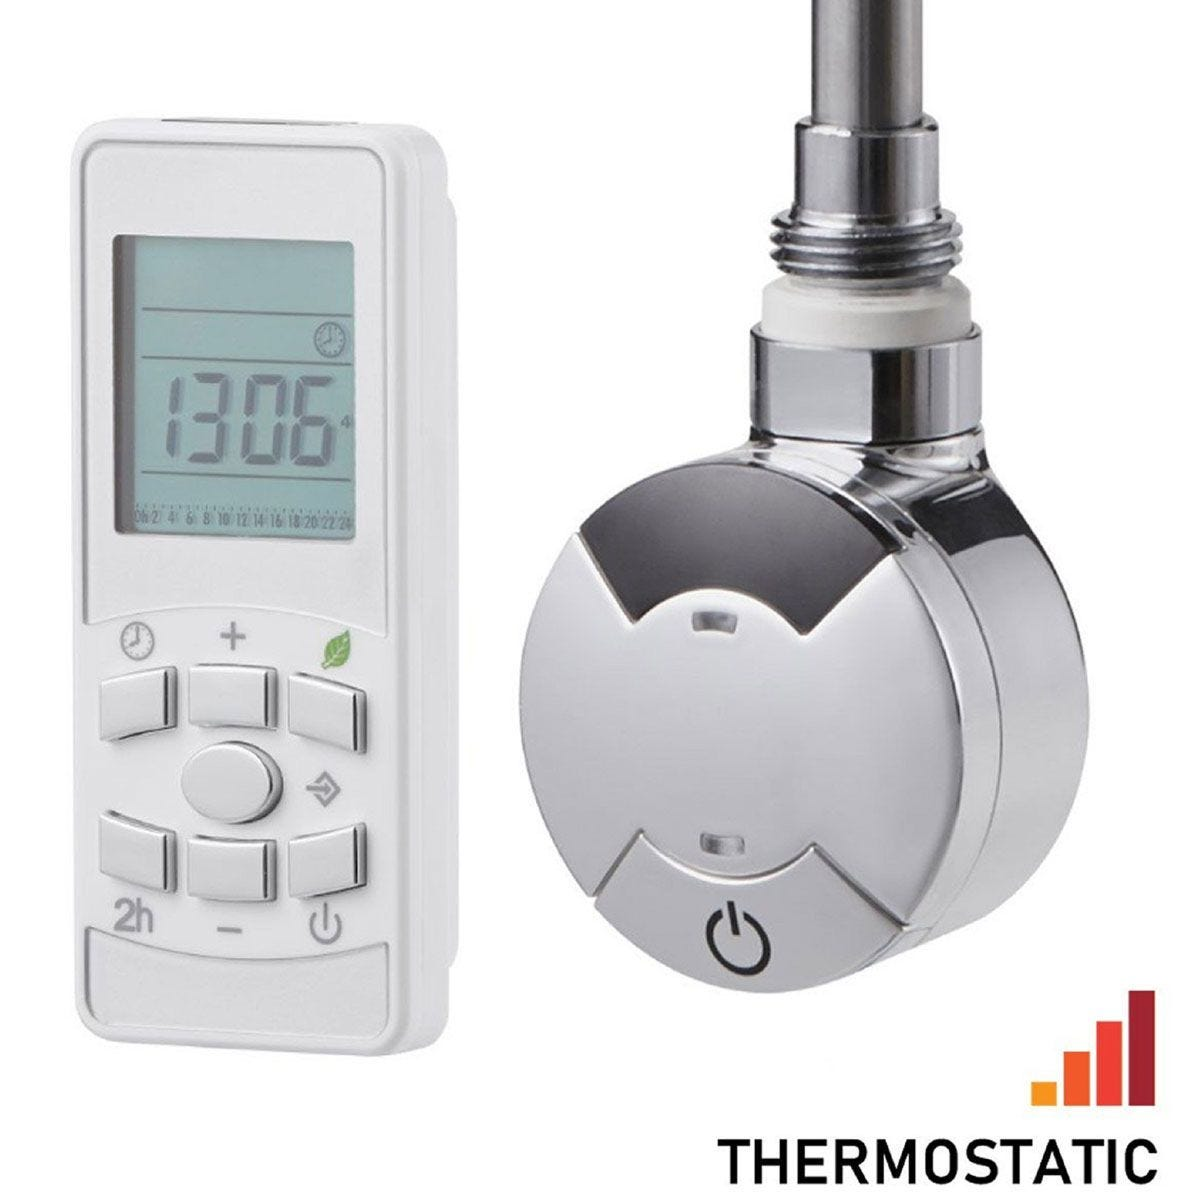 Heating Style Timed Remote Control Thermostatic 600W Element + T-Piece - Chrome